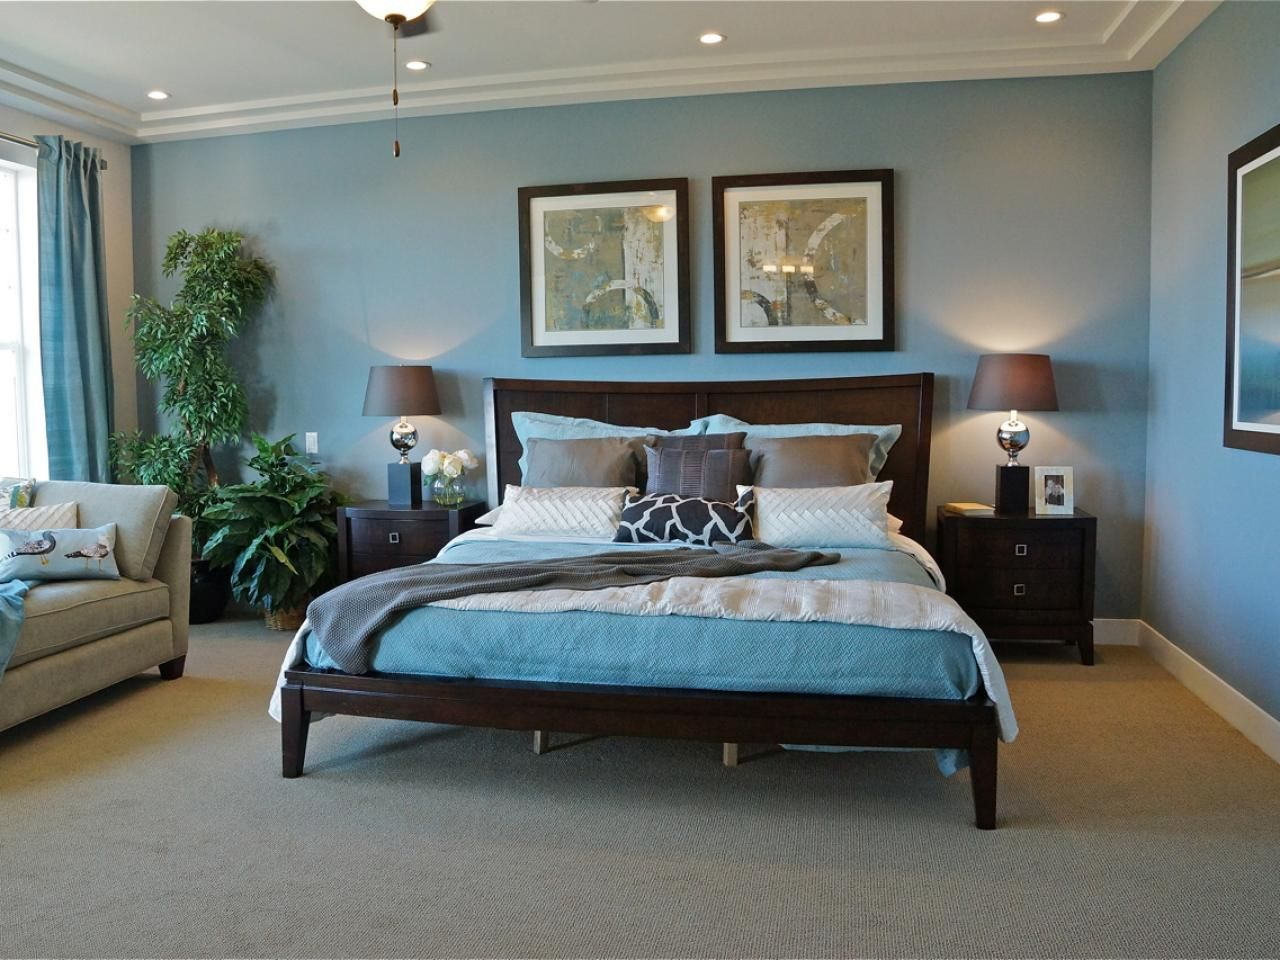 Soothing And Stately This Traditional Bedroom Pairs Dark Wood Furniture With